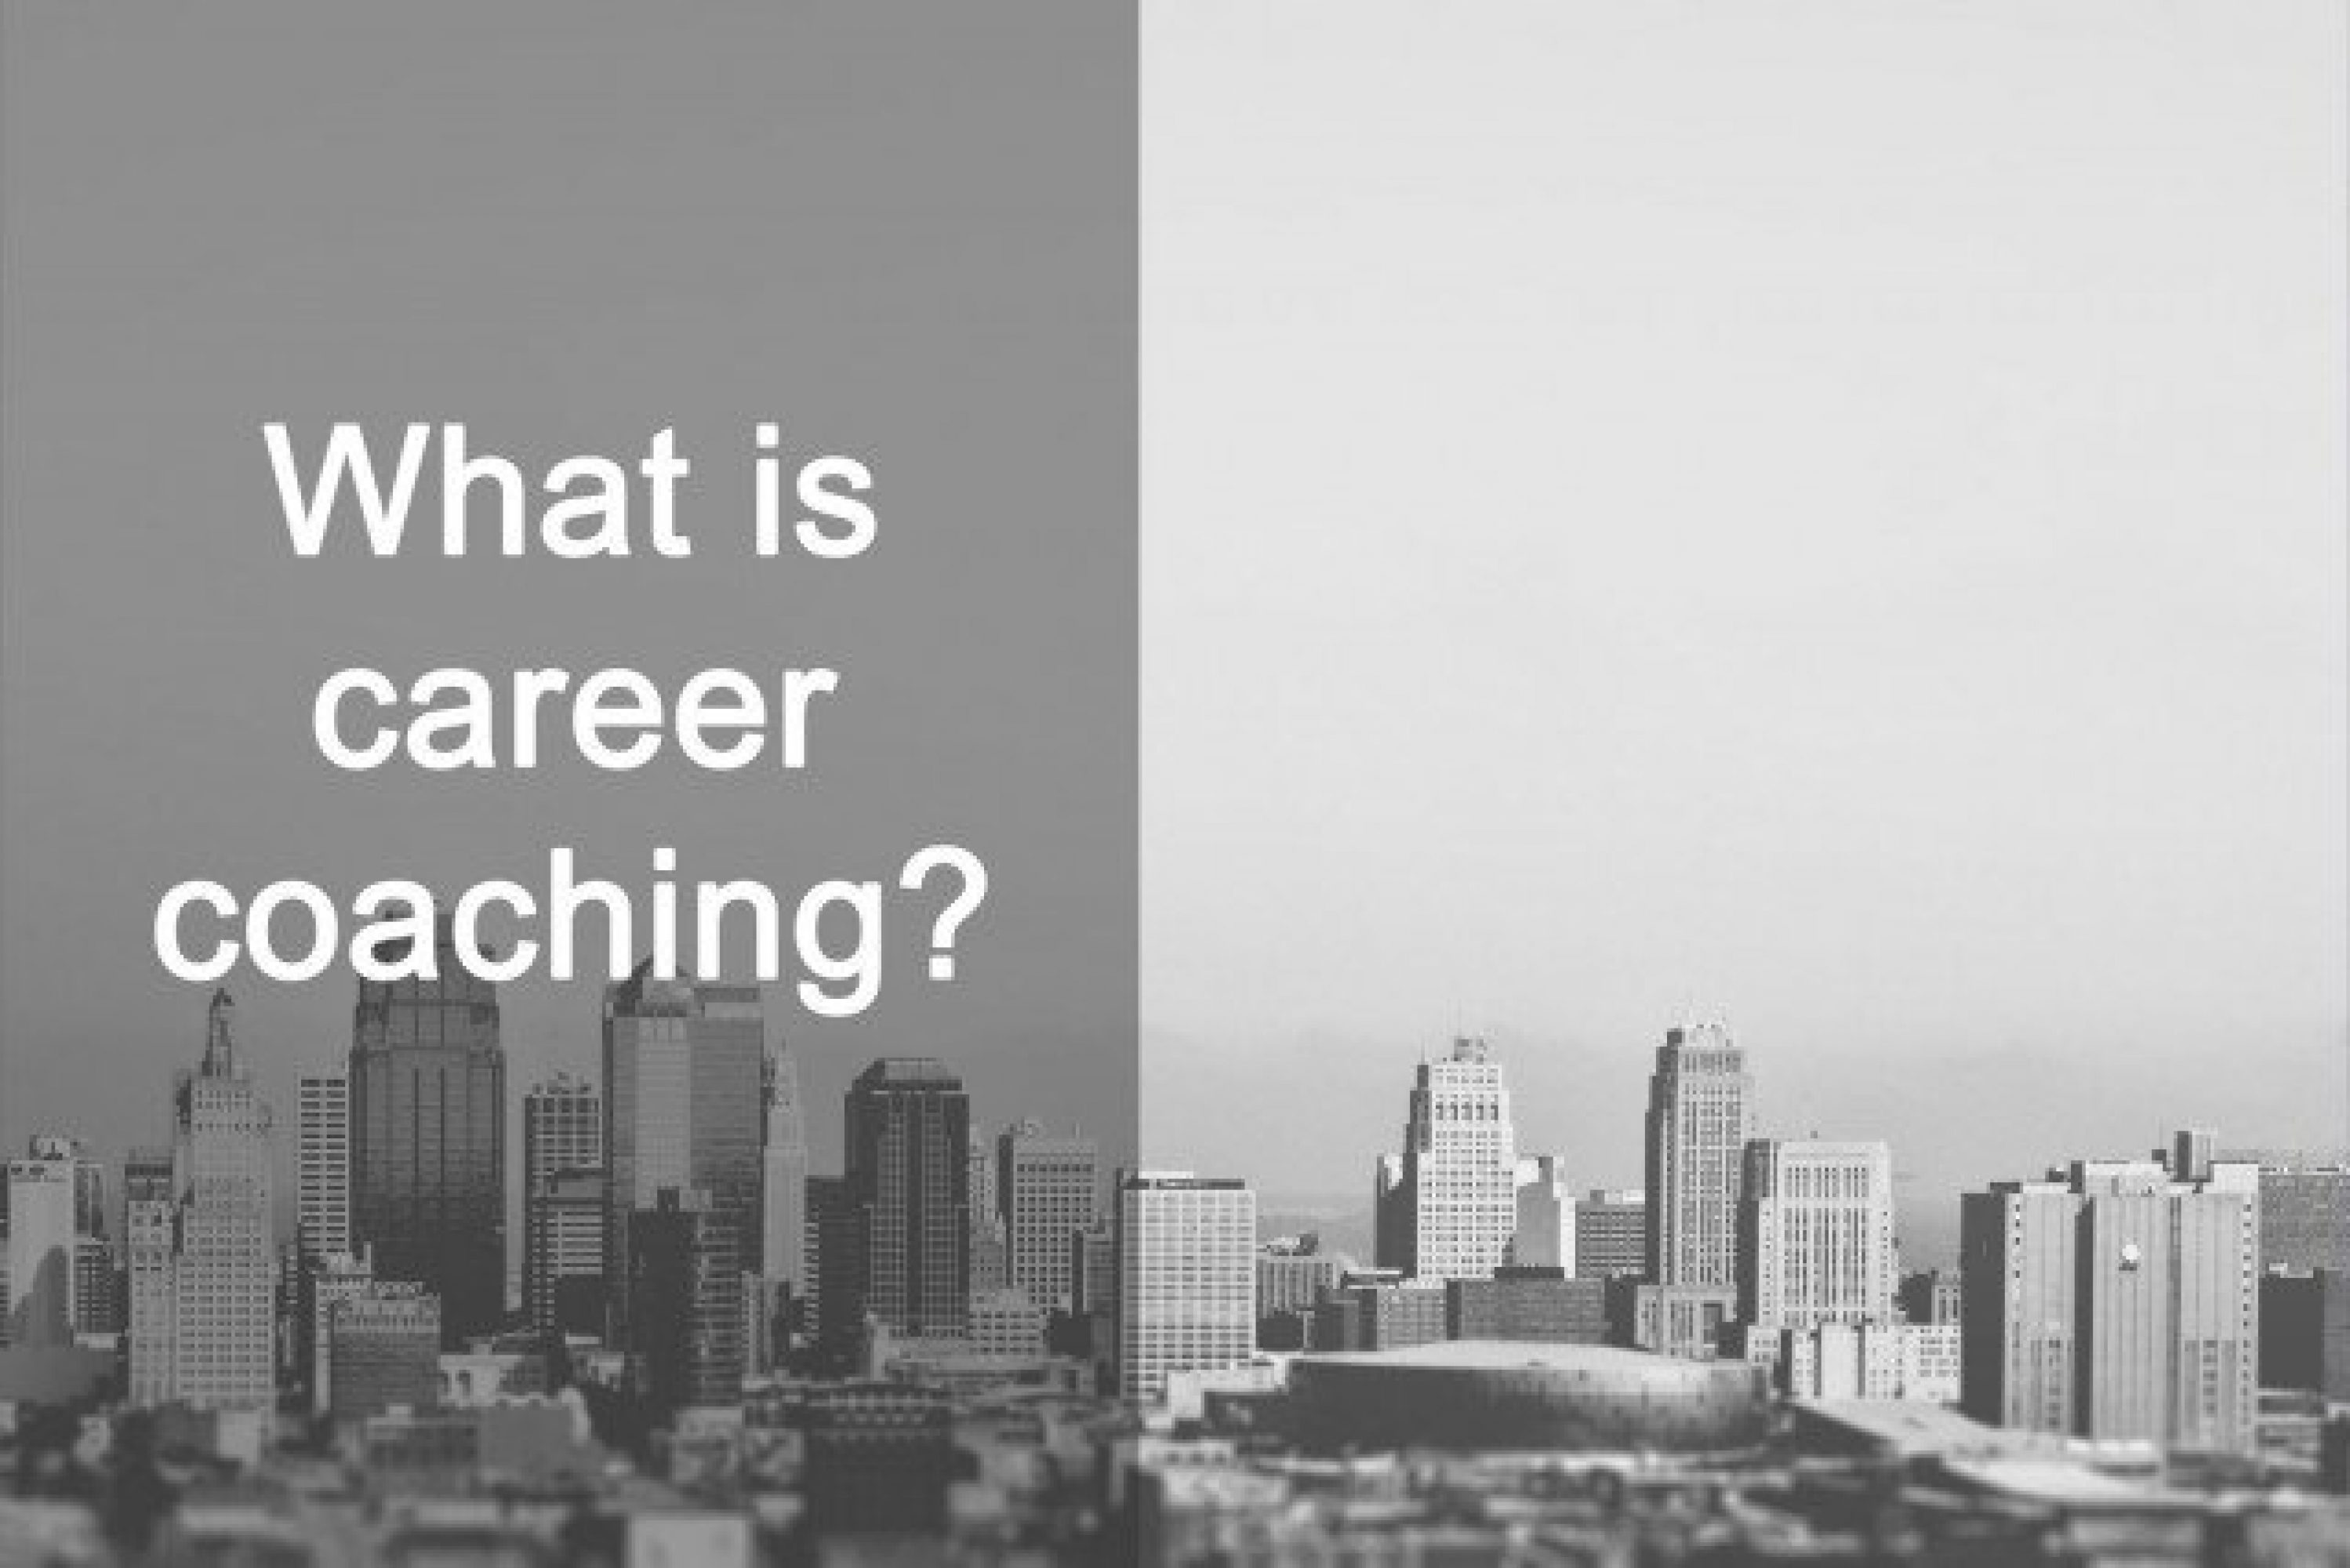 What is career coaching?